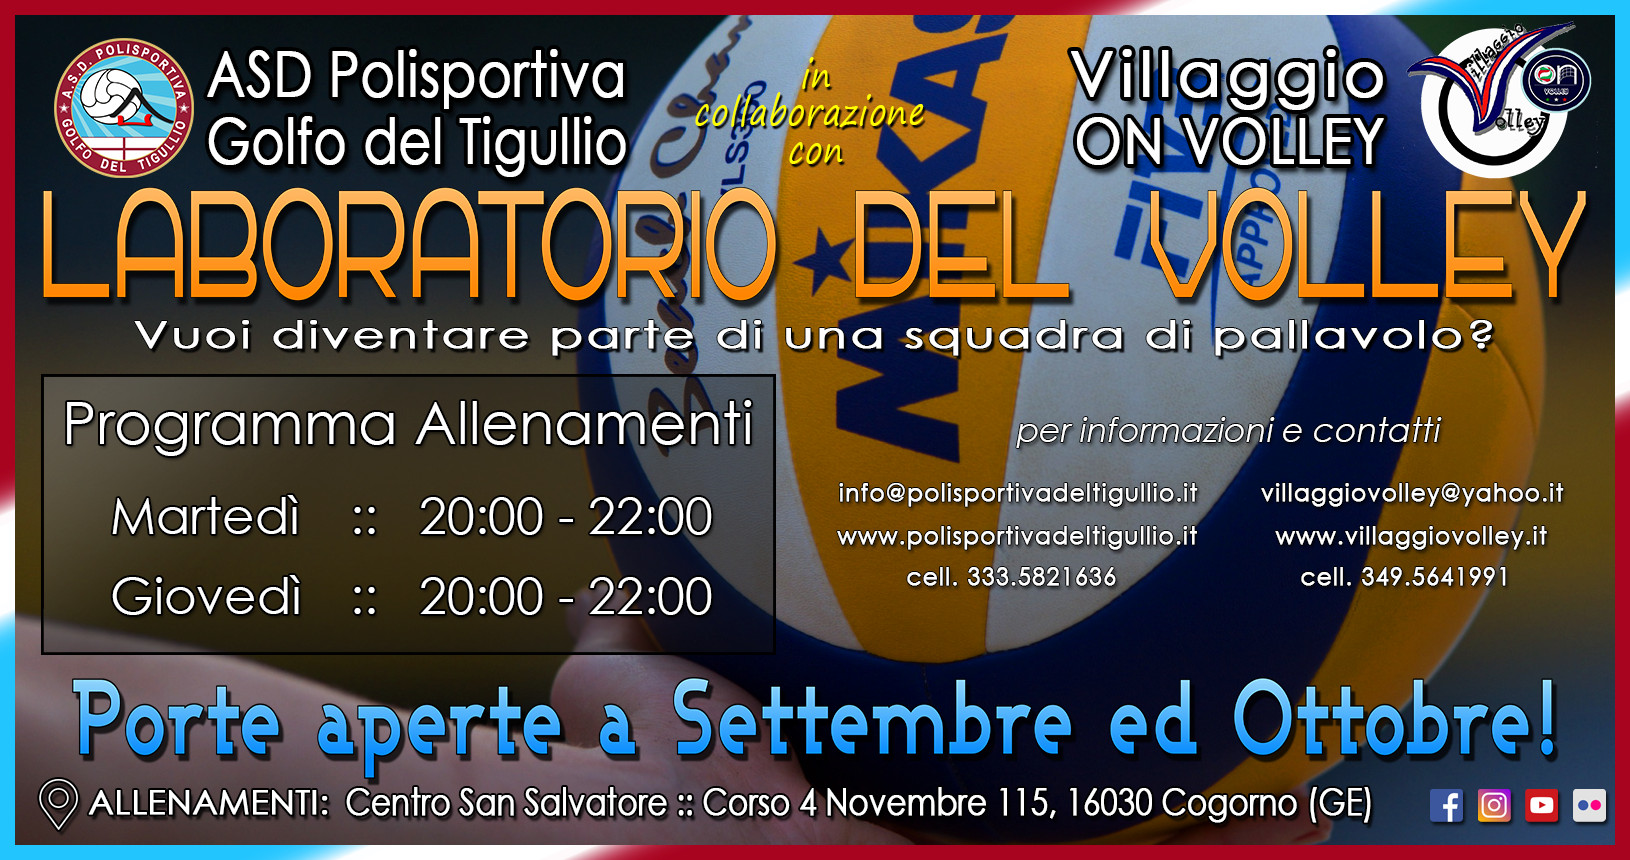 Villaggio Volley - Laboratorio del Volley